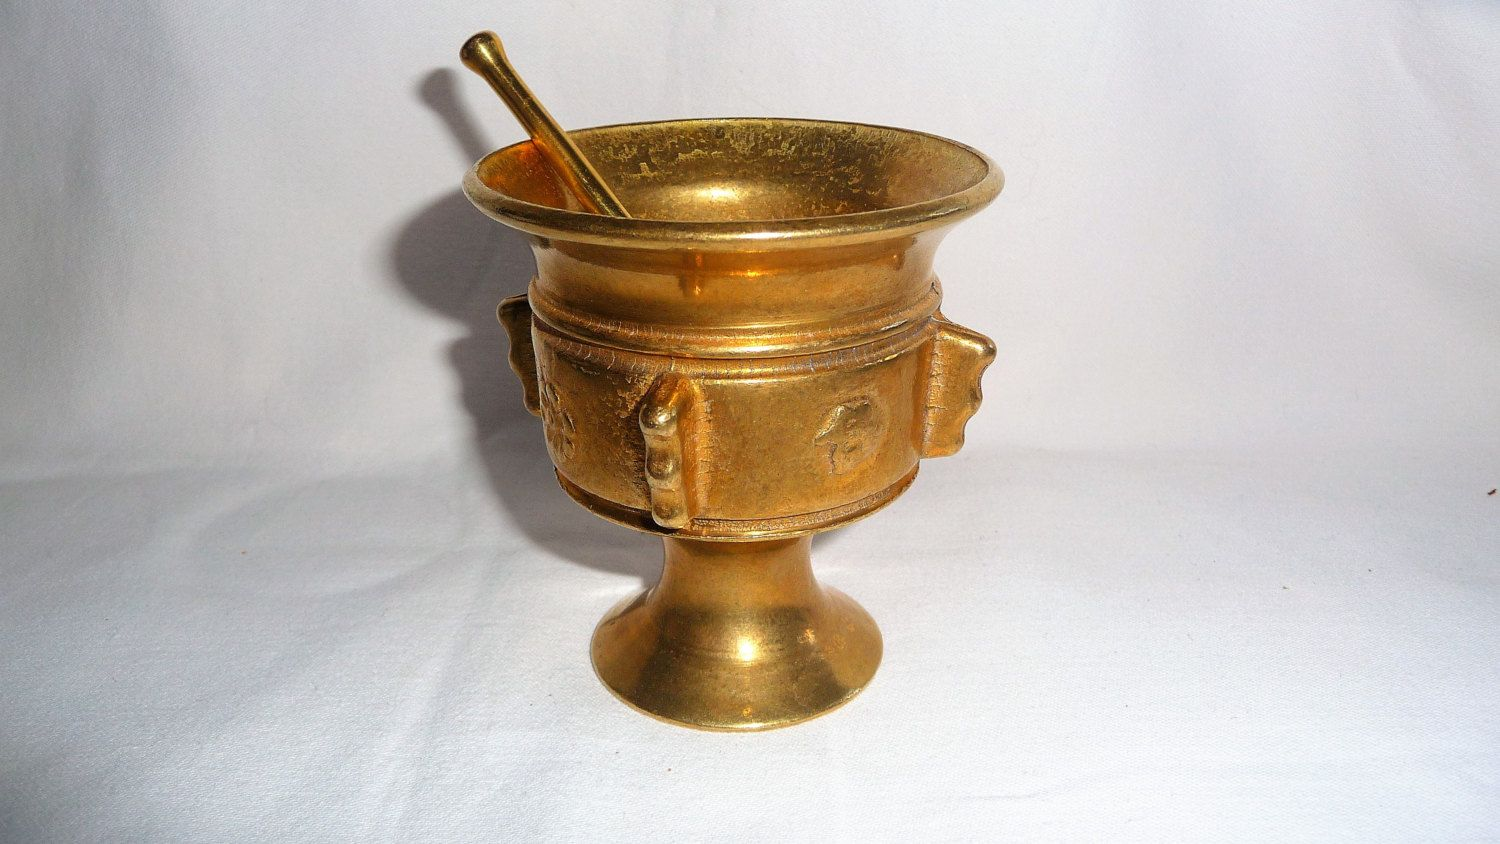 Vintage Solid Brass Mortar And Pestle Bronze Apothecary Home Decor Footed Herb Spice